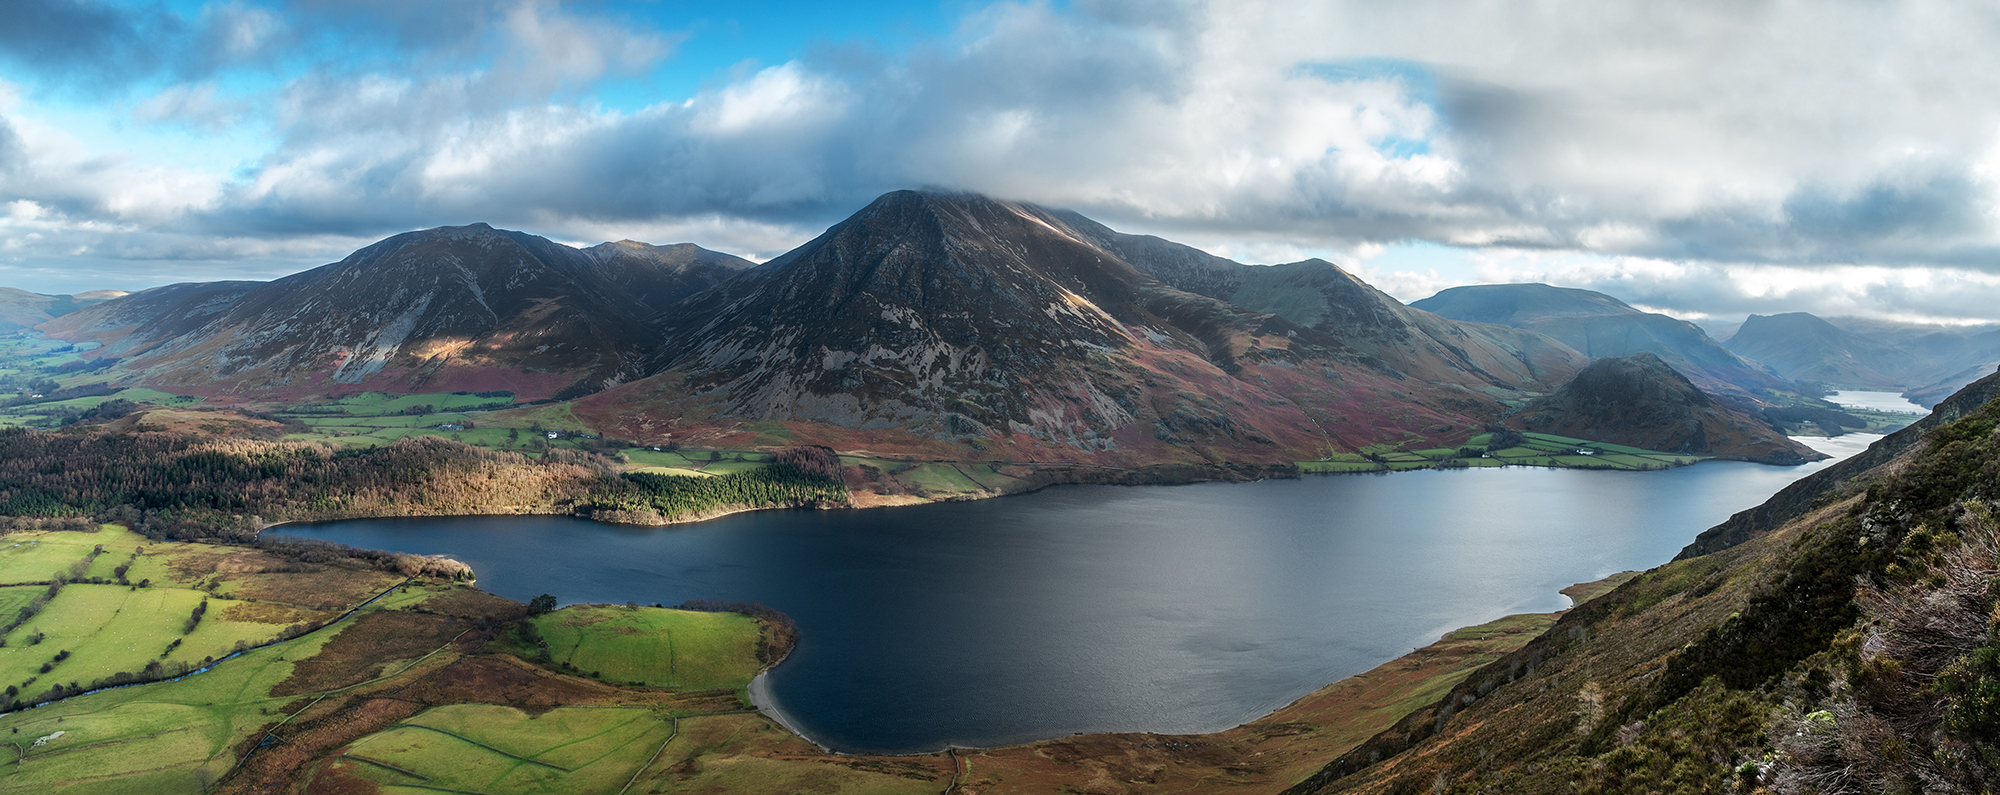 Crummock Water from Mellbreak